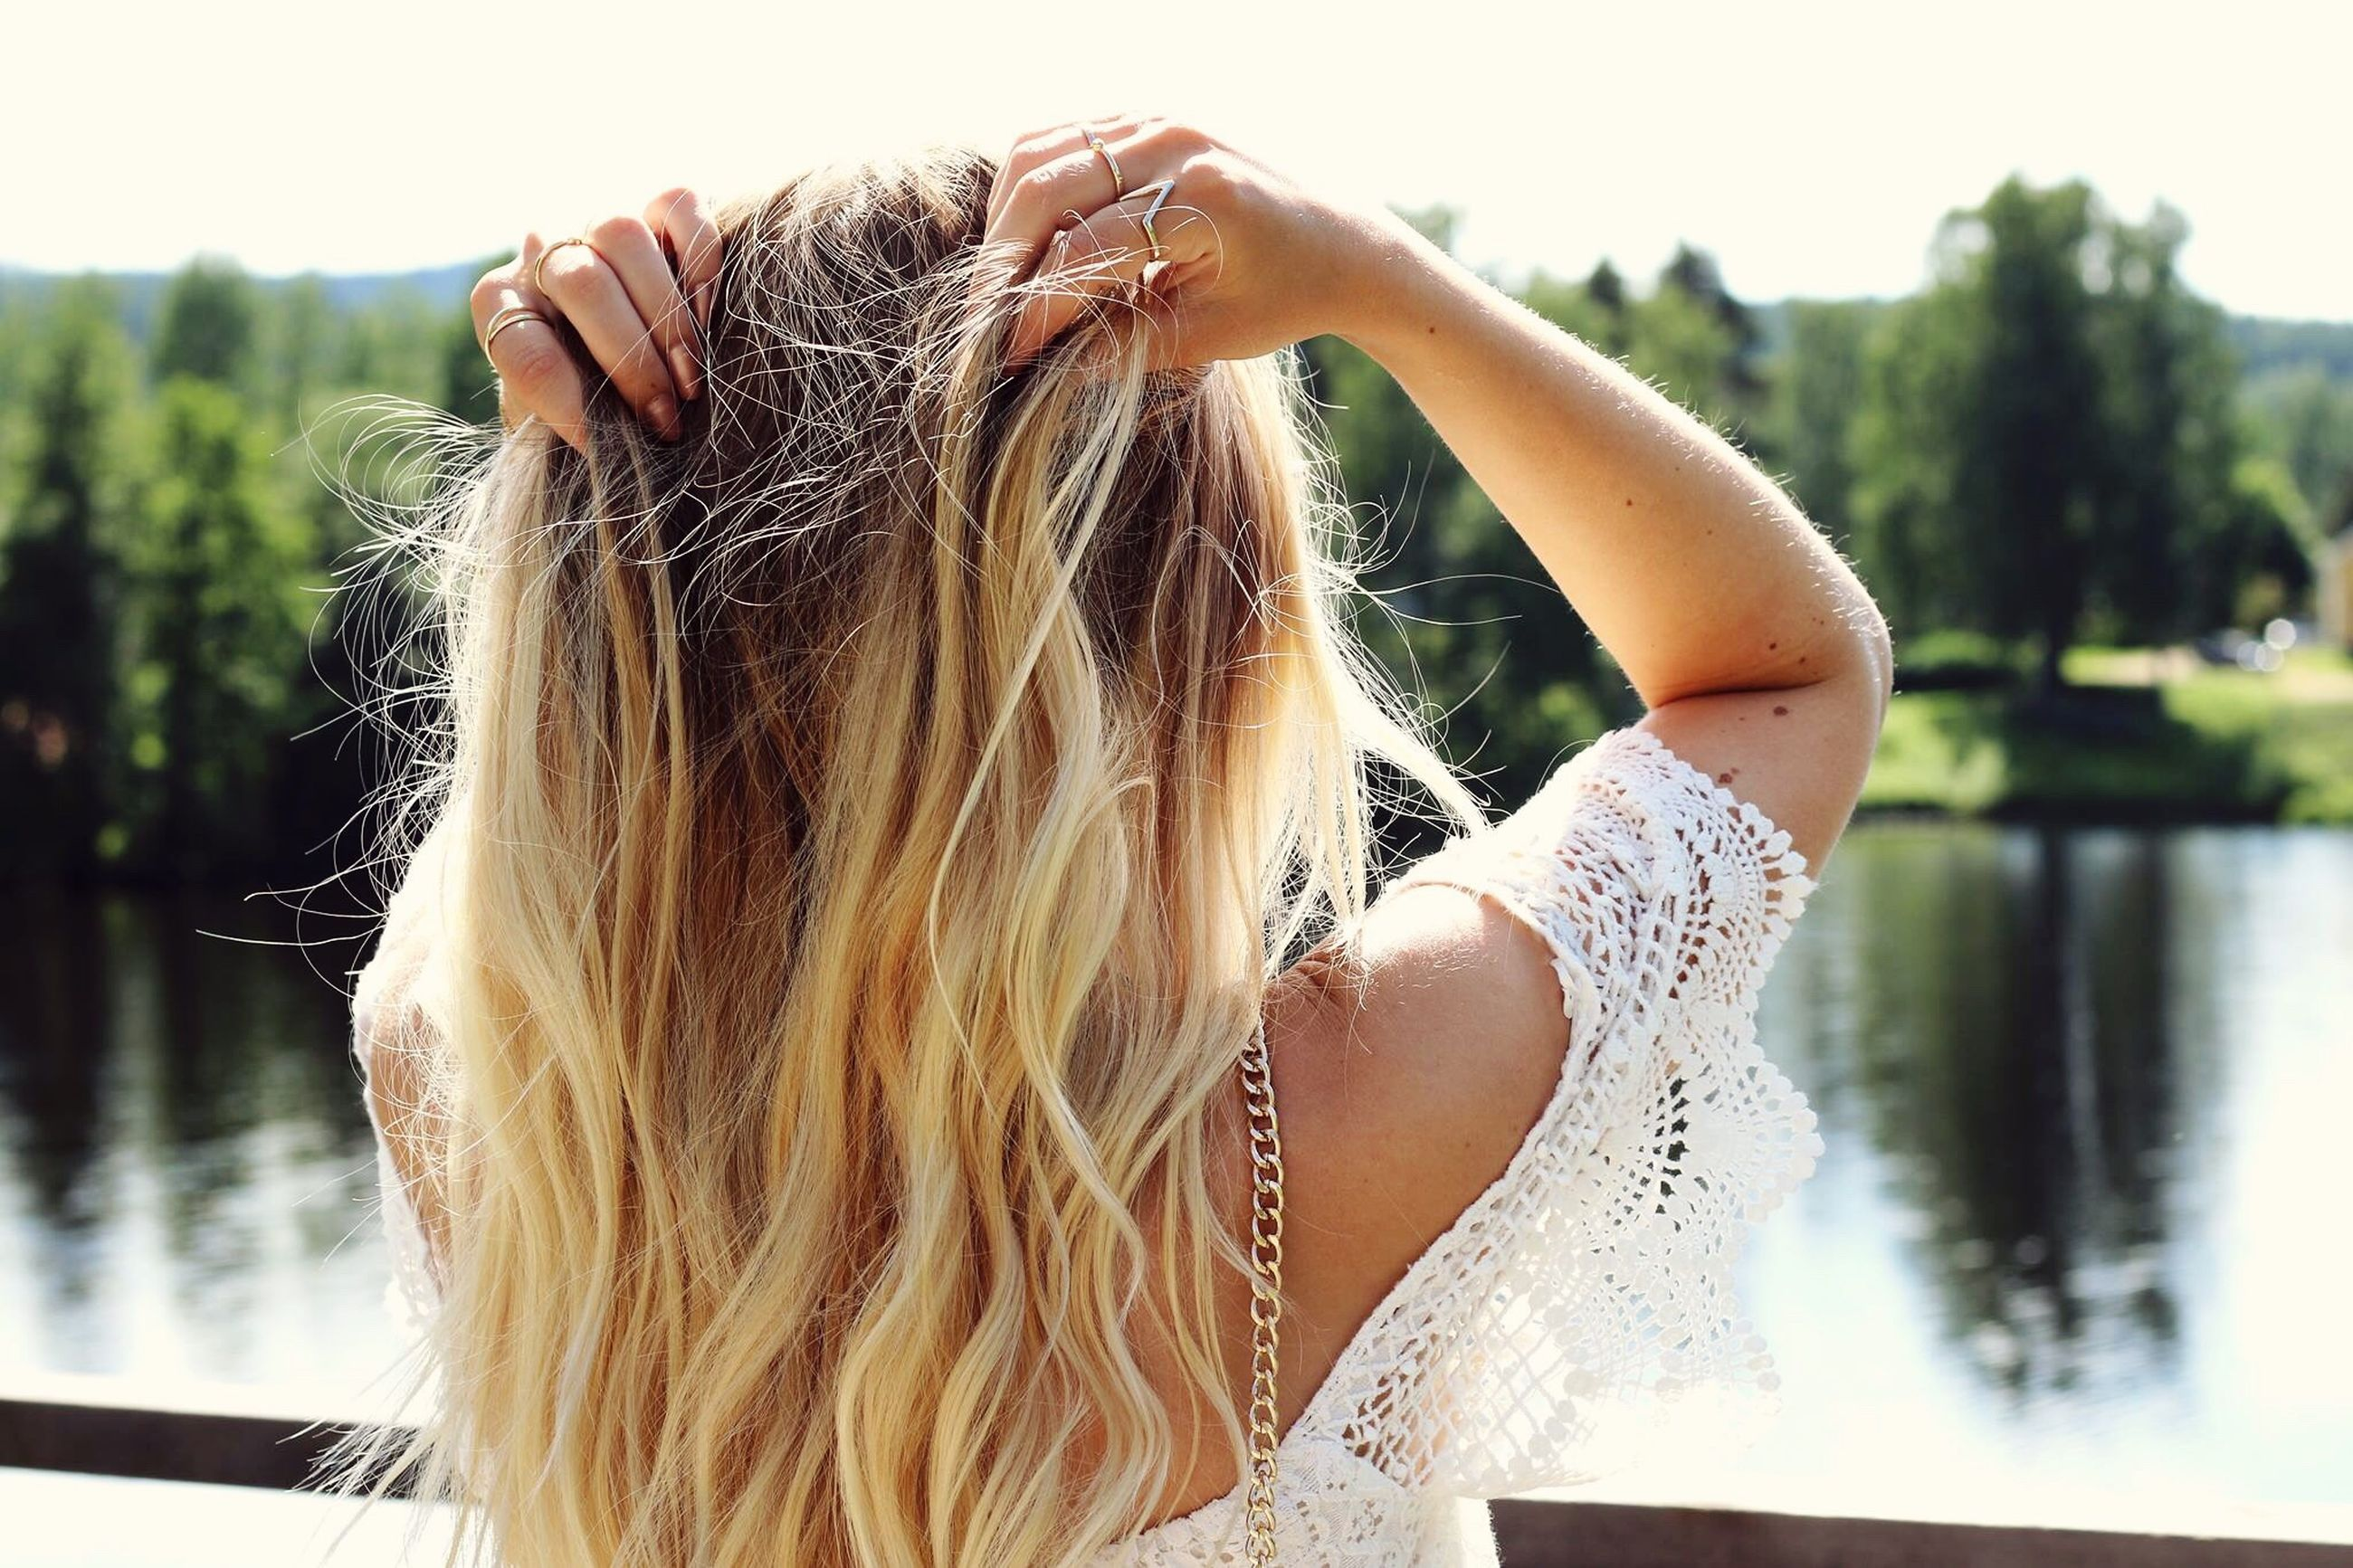 long hair, young women, focus on foreground, person, young adult, lifestyles, human hair, leisure activity, close-up, headshot, rear view, brown hair, side view, blond hair, sunlight, day